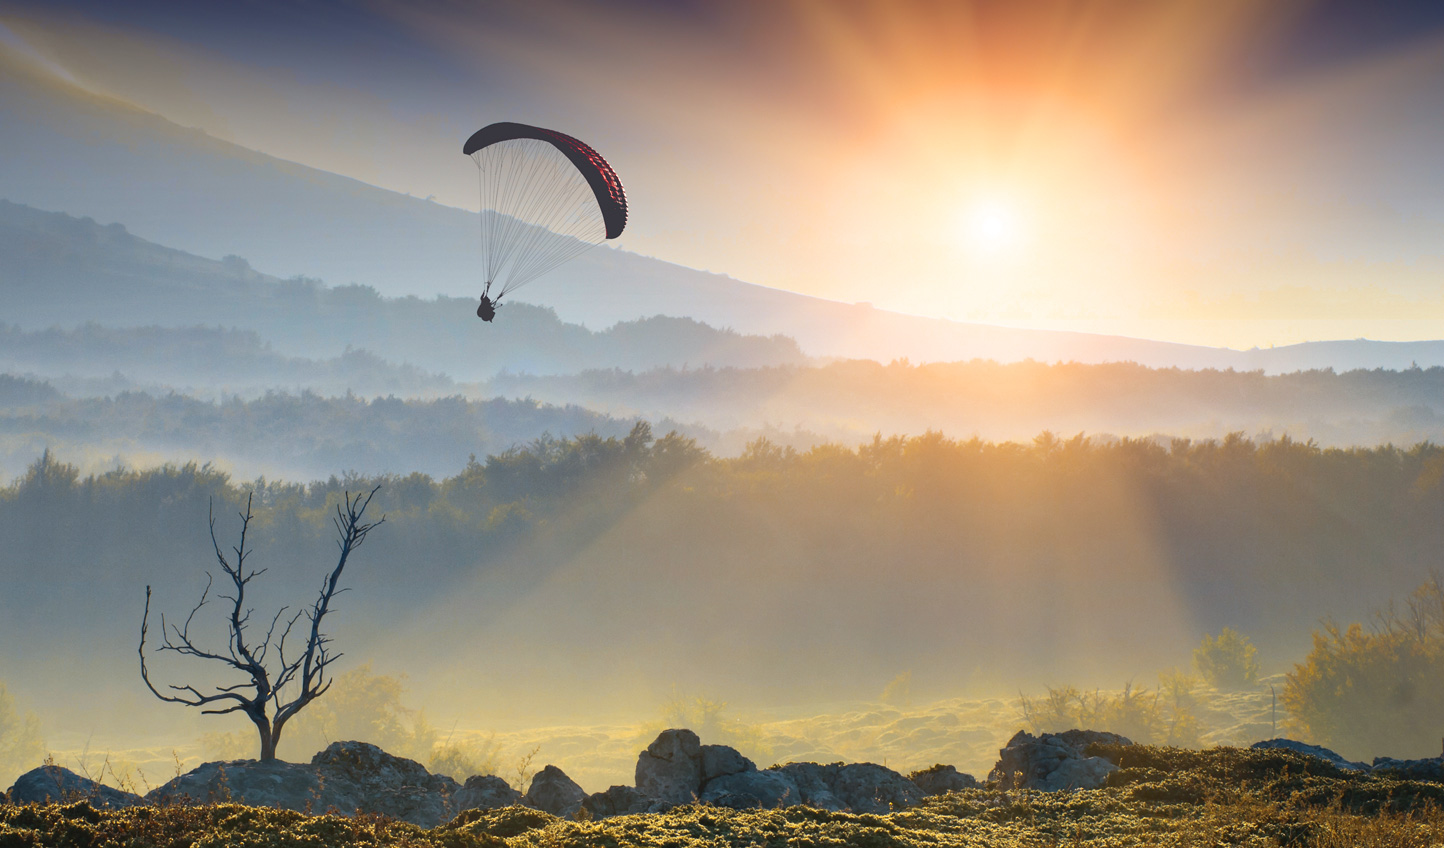 Enjoy the peace and tranquility of paragliding above it all